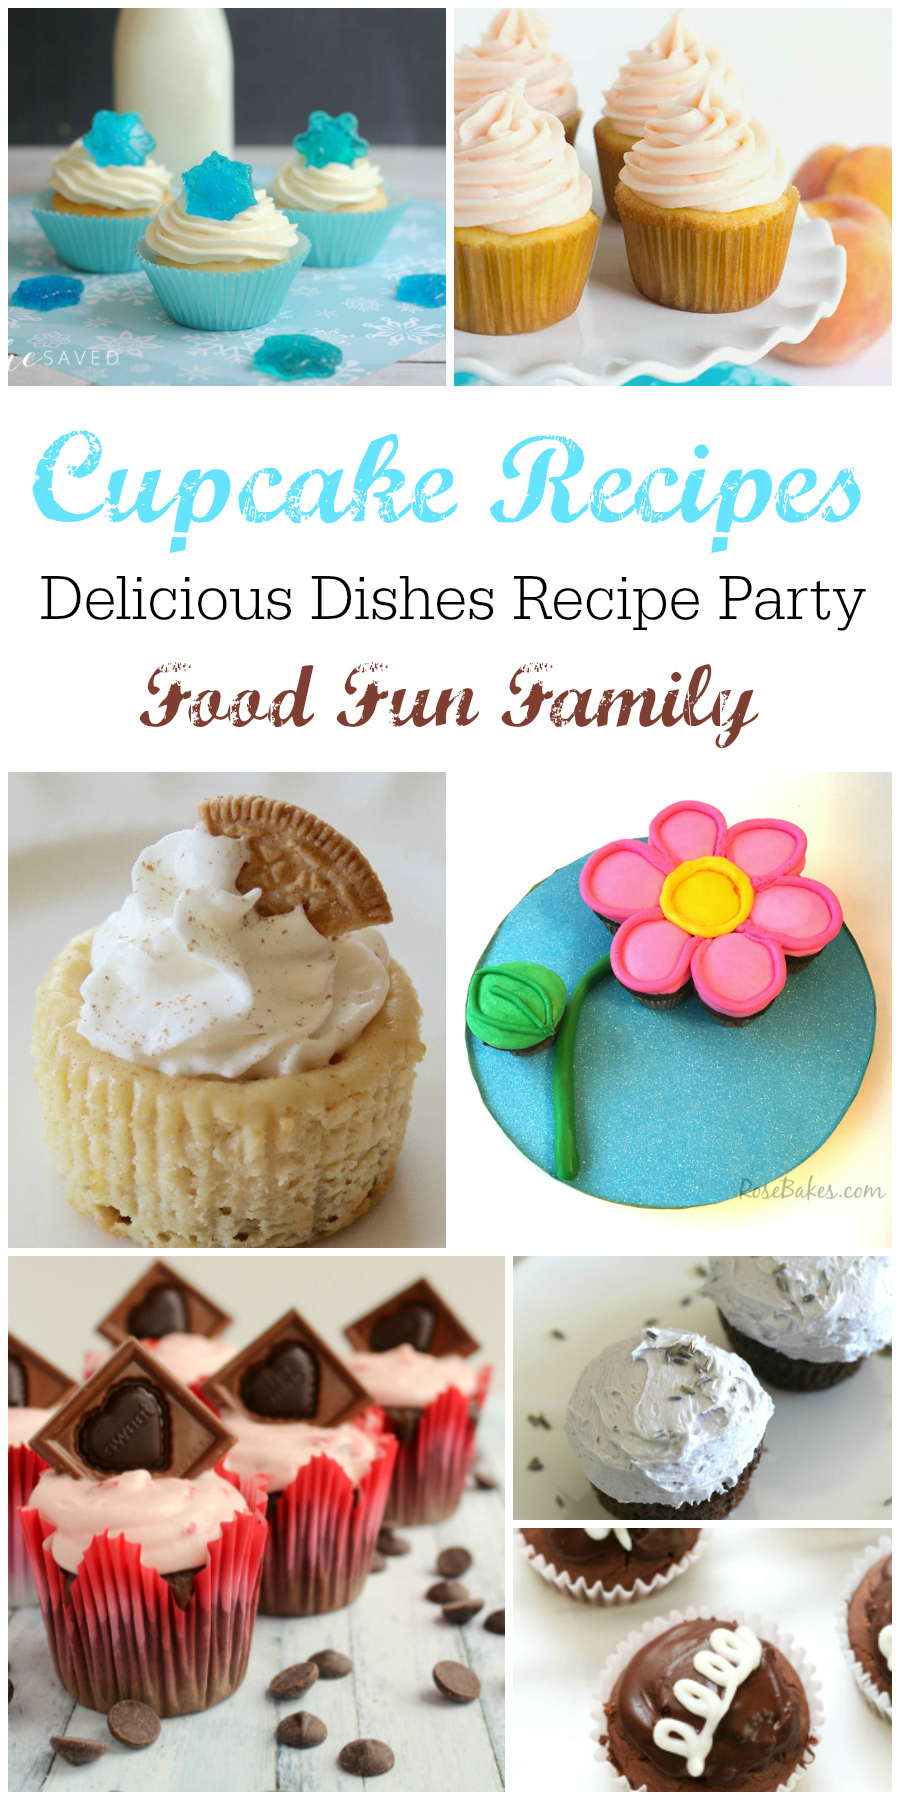 Cupcake Recipes - Delicious Dishes Recipe Party at Food Fun Family